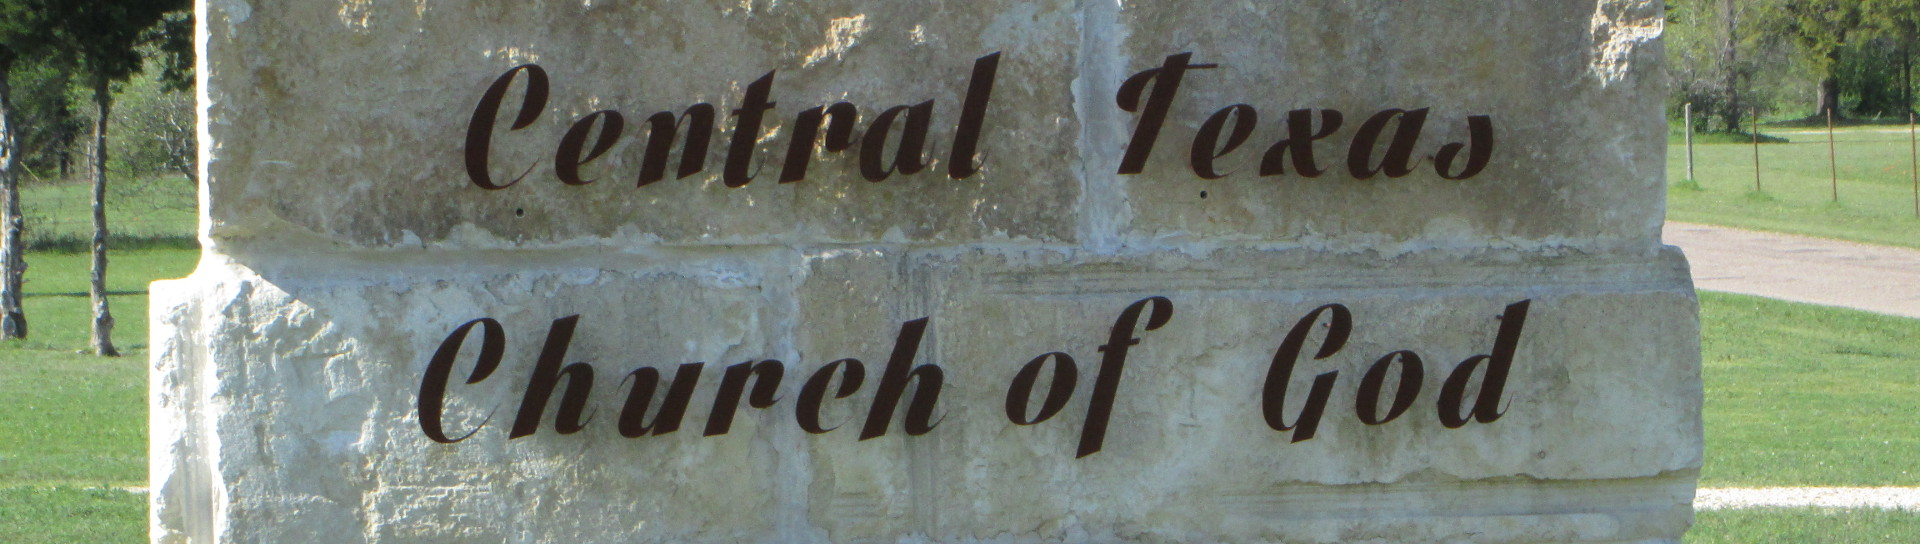 Central Texas Church of God